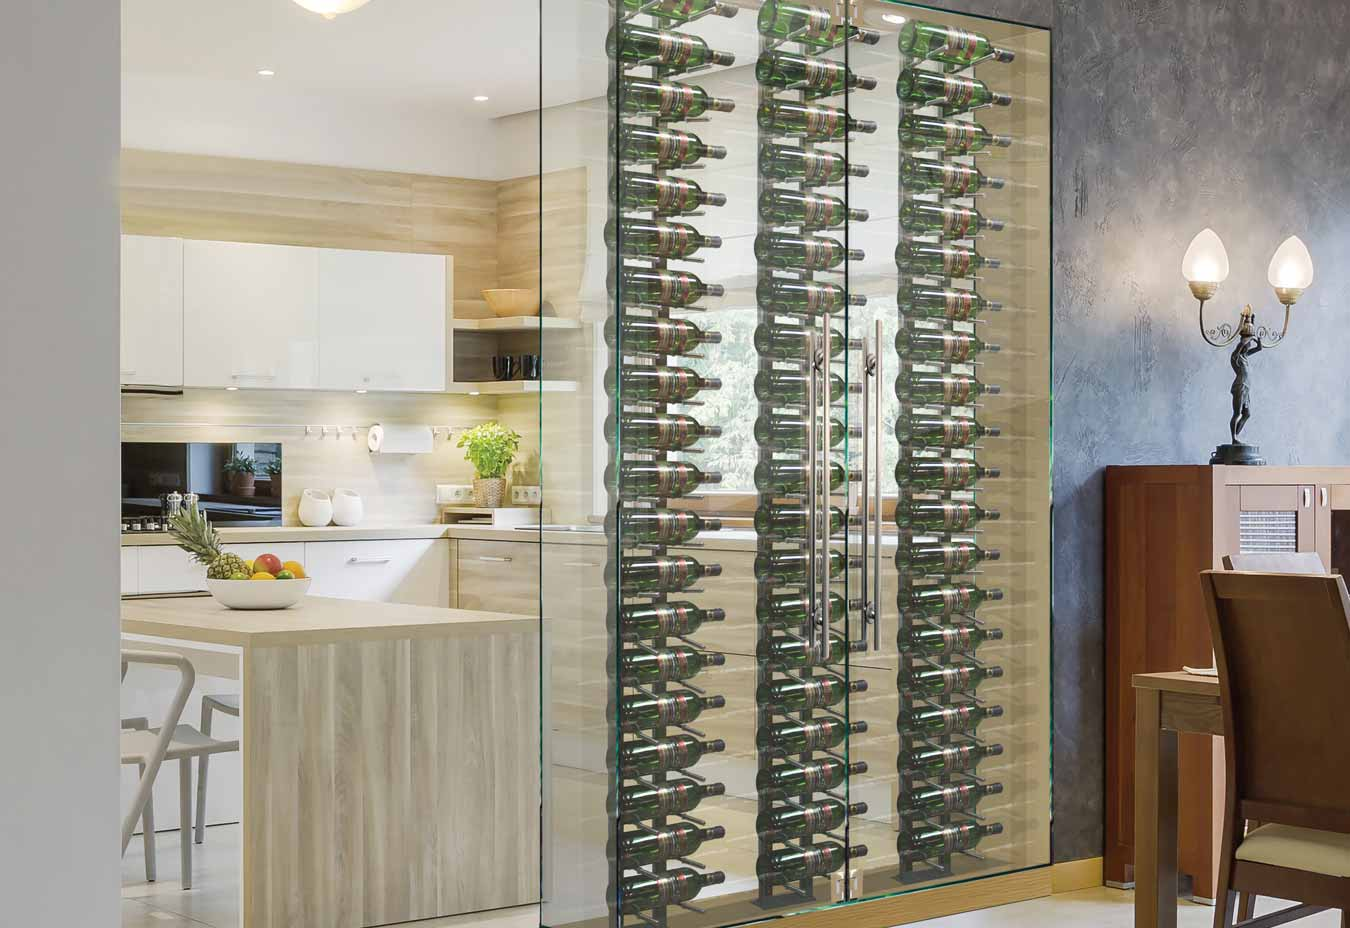 Kitchen wall cut out wine cellar